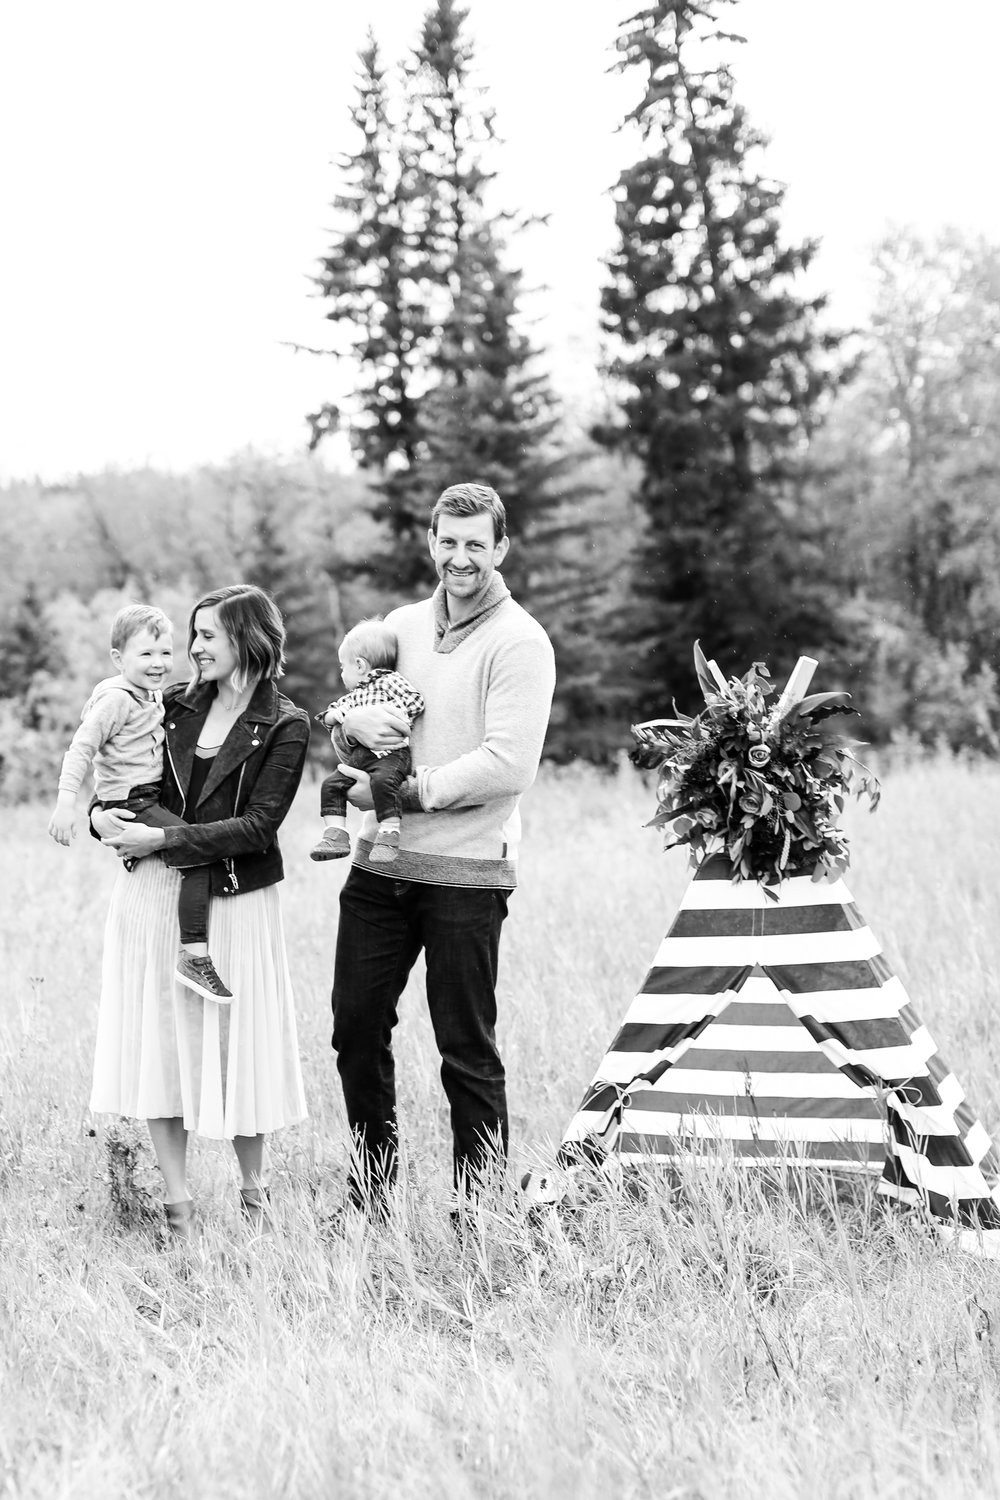 Fall-Family-Creative-Lindsay_Skeans_Photography-10.jpg